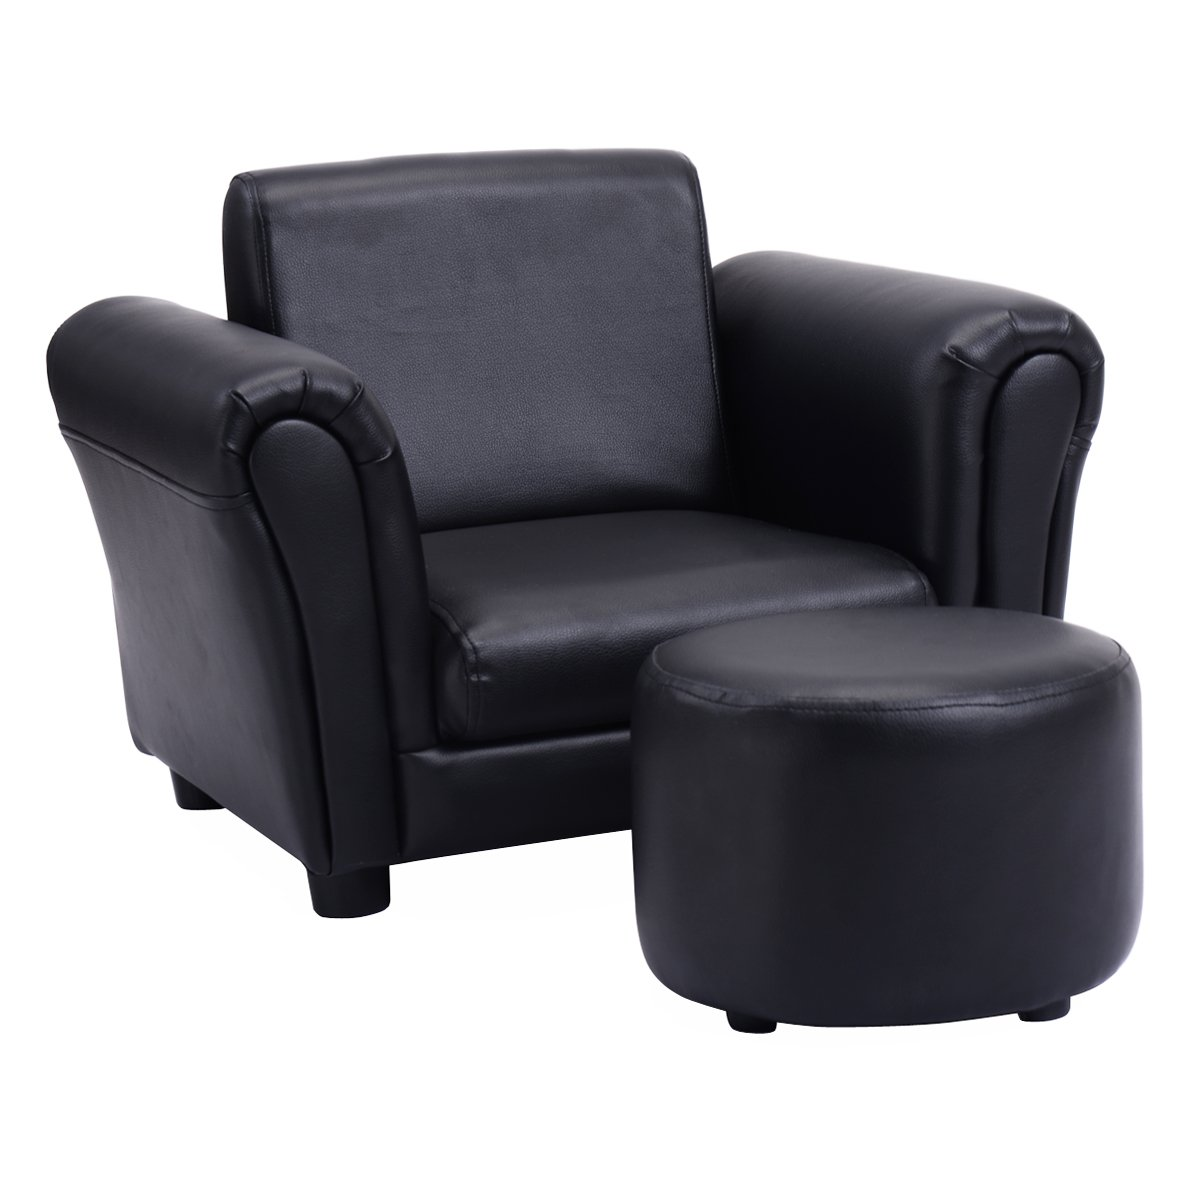 Costzon Kids Sofa, PU Leather Upholstered Armrest, Sturdy Wood Construction, Toddler Chair (Black Sofa with Footstool)